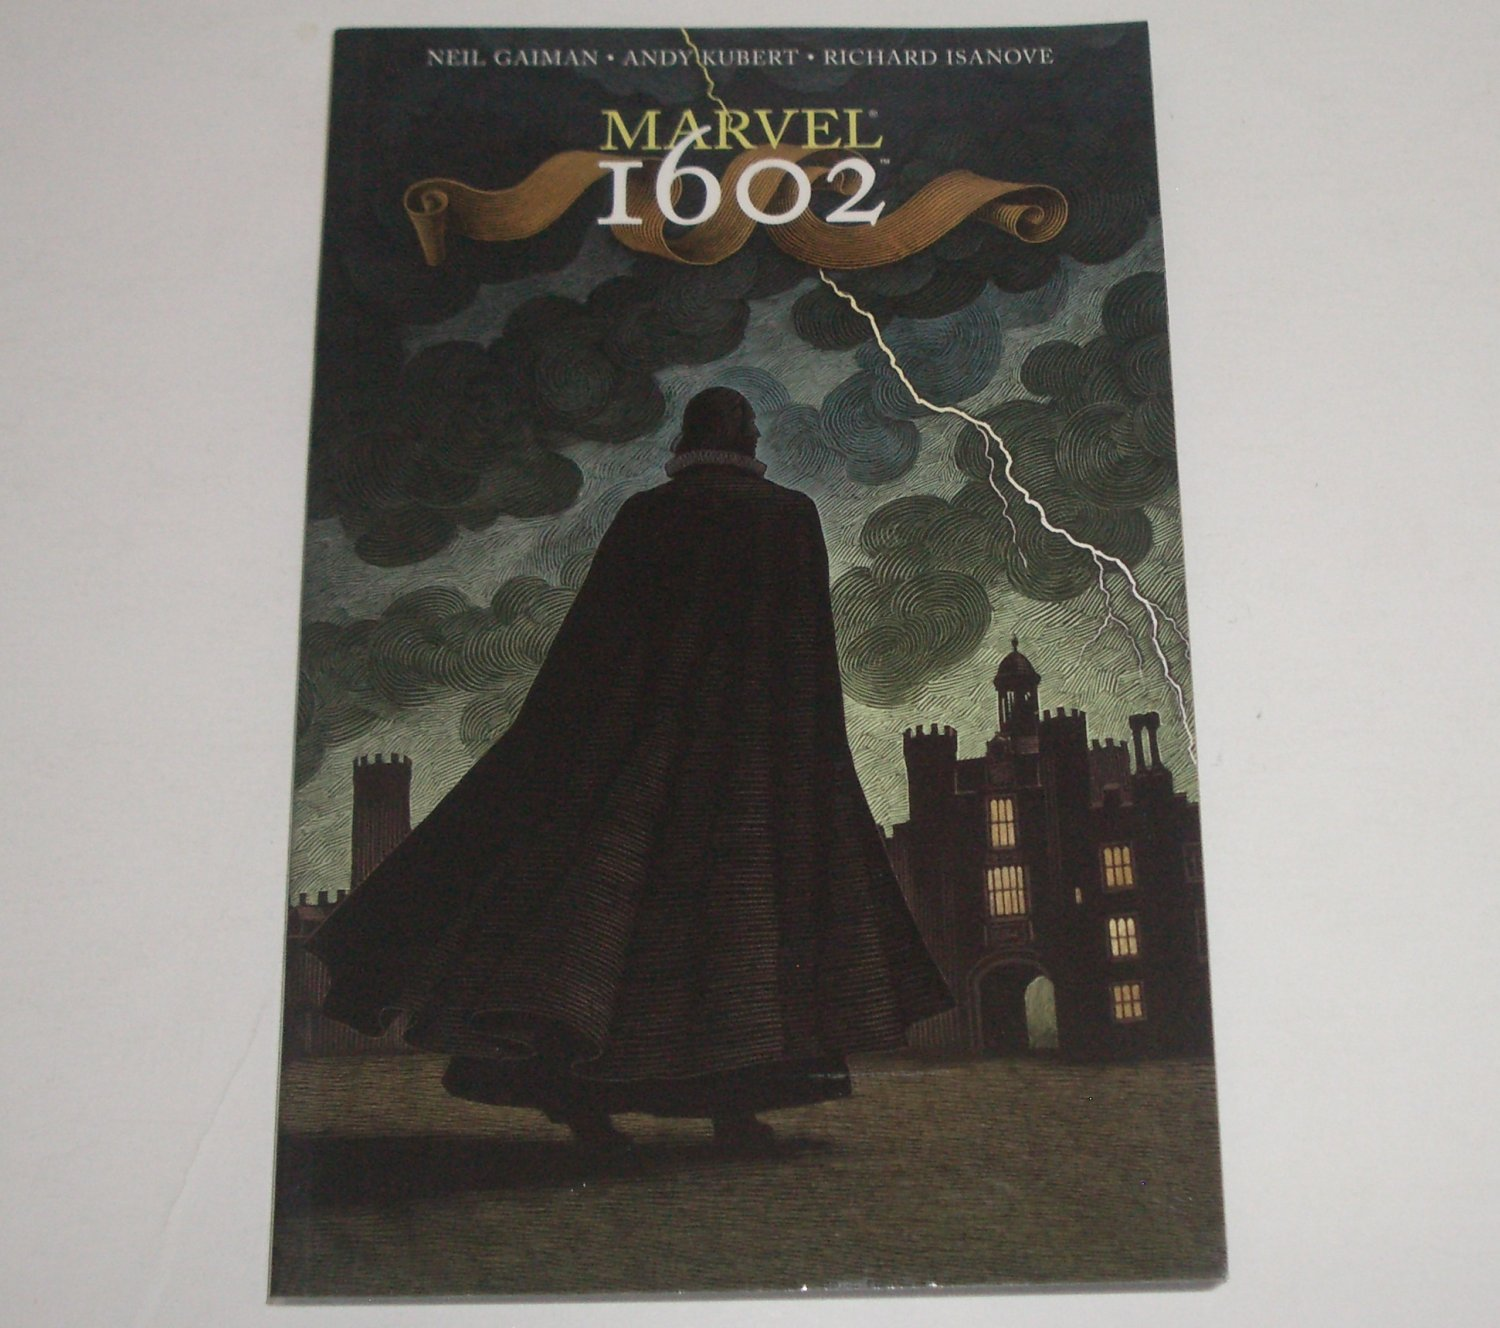 Marvel 1602 by Neil Gaiman, Richard Isanove, Andy Kubert 2005 Graphic Novel